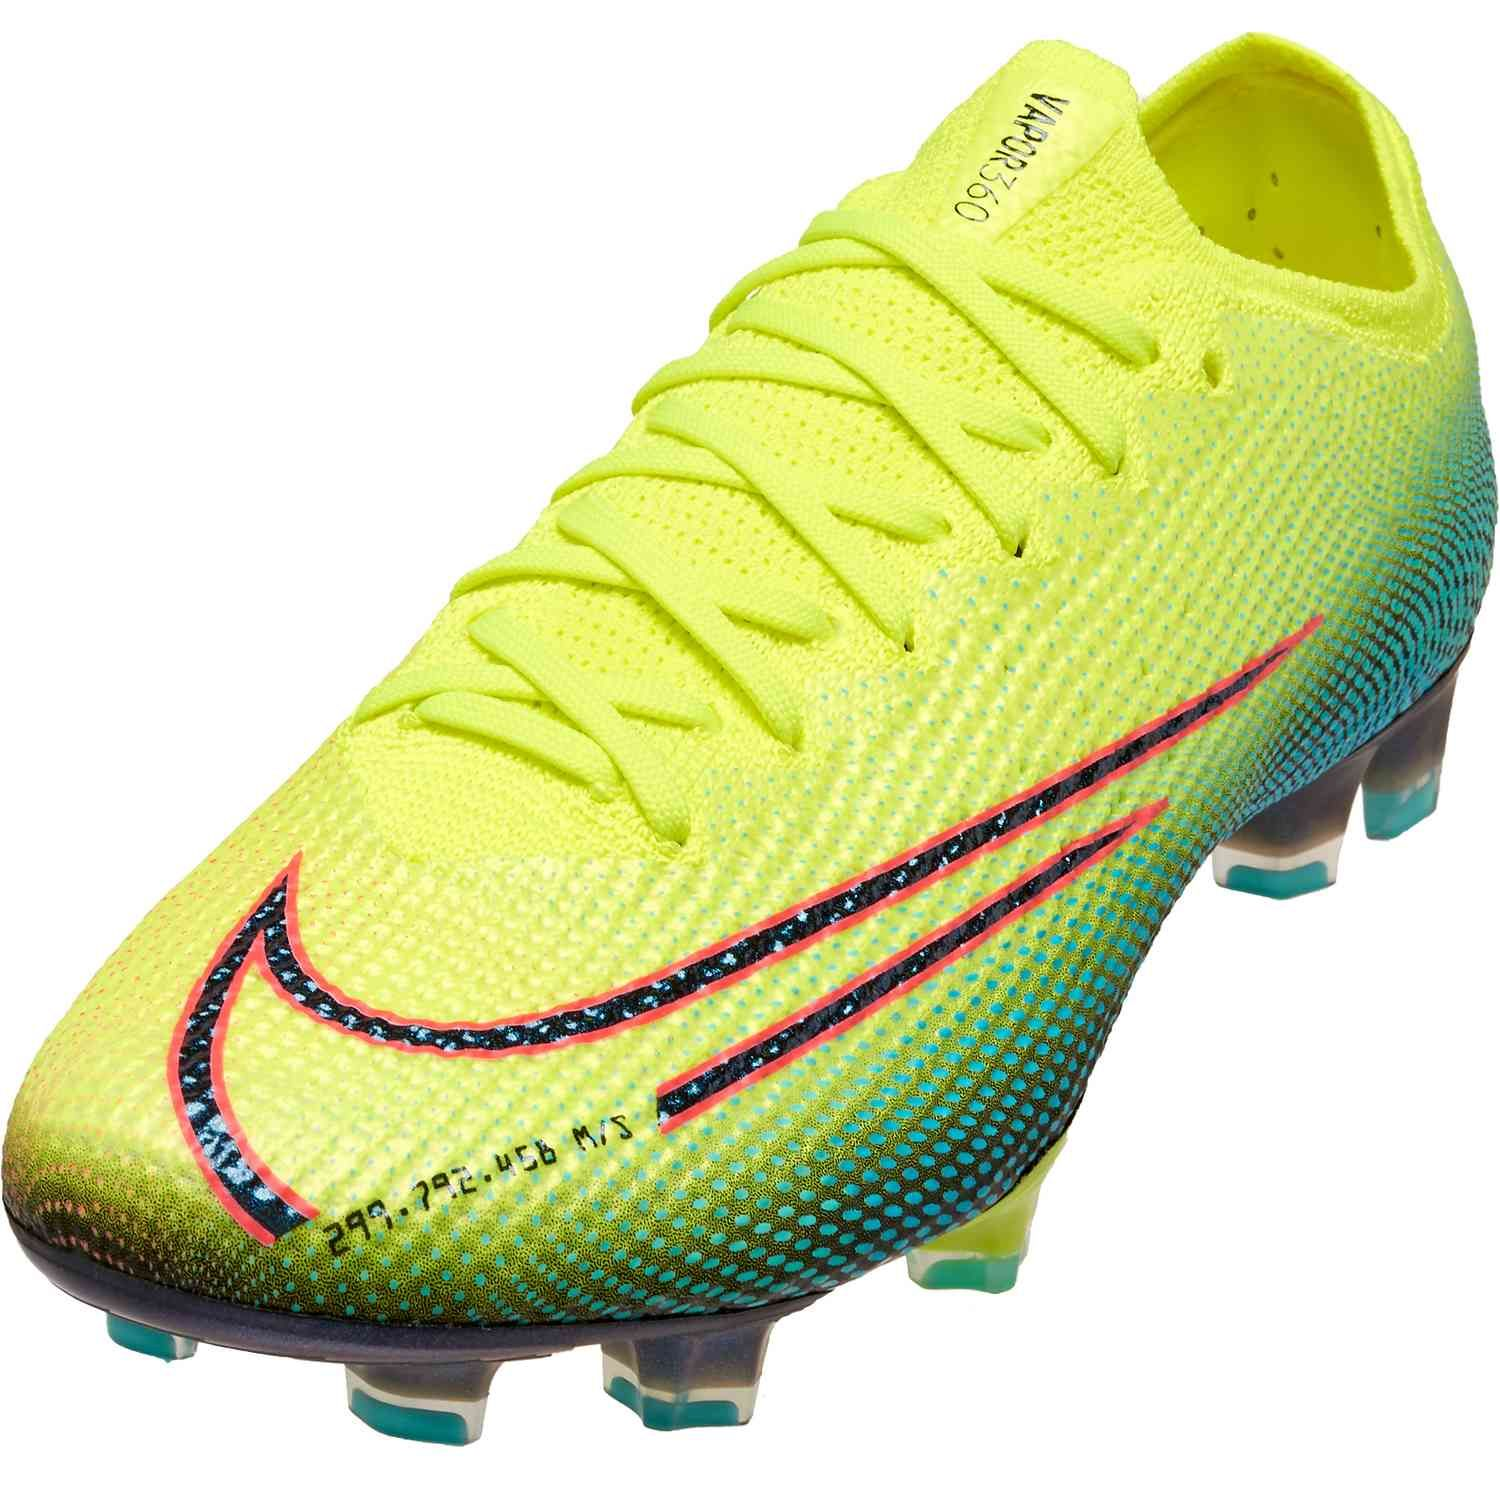 Nike Mds Mercurial Vapor 13 Elite Fg Lemon Venom Soccerpro In 2020 Superfly Soccer Cleats Soccer Cleats Cleats